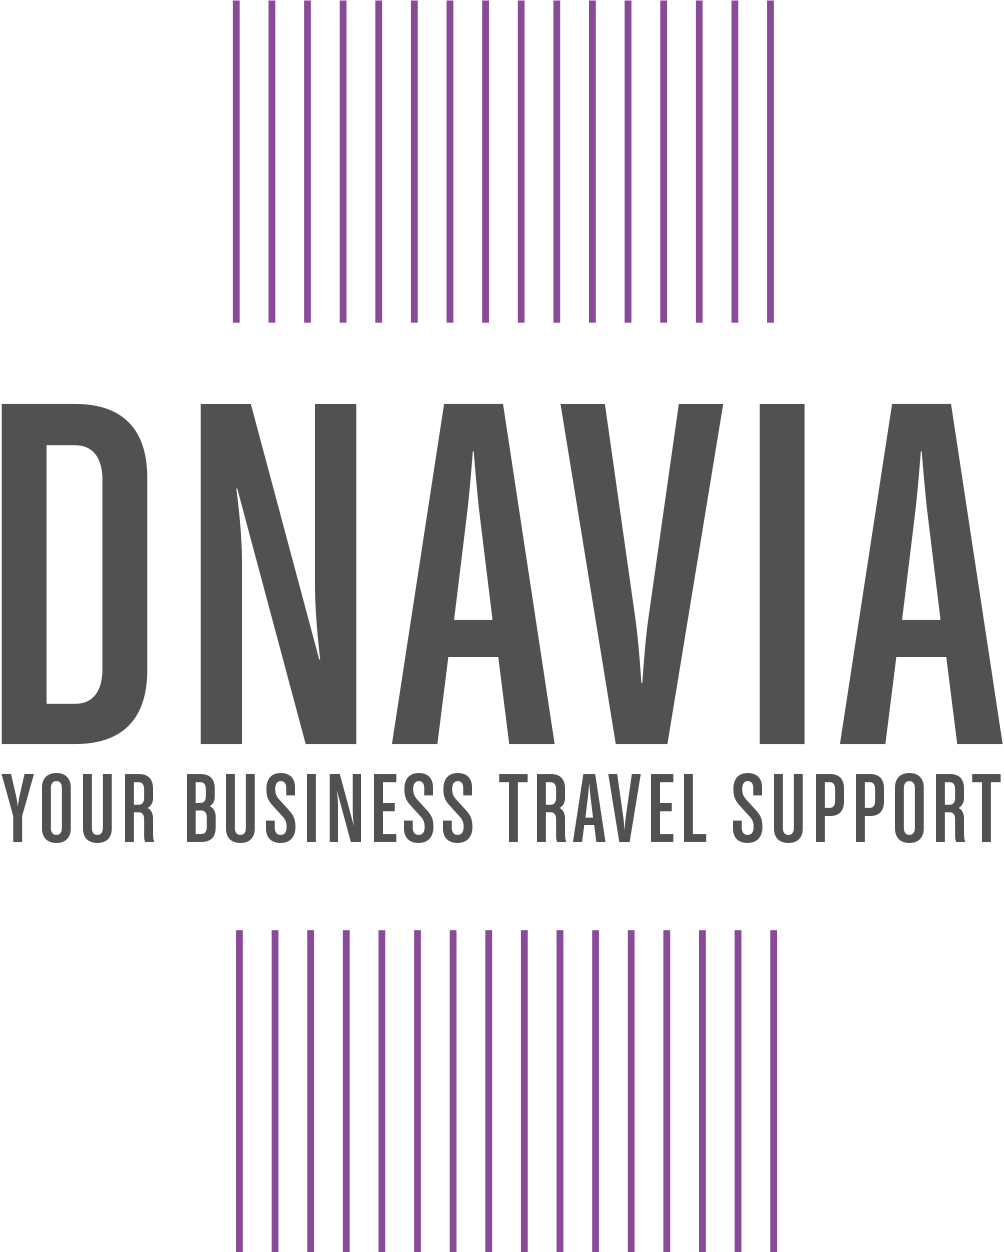 Your Business Travel Support